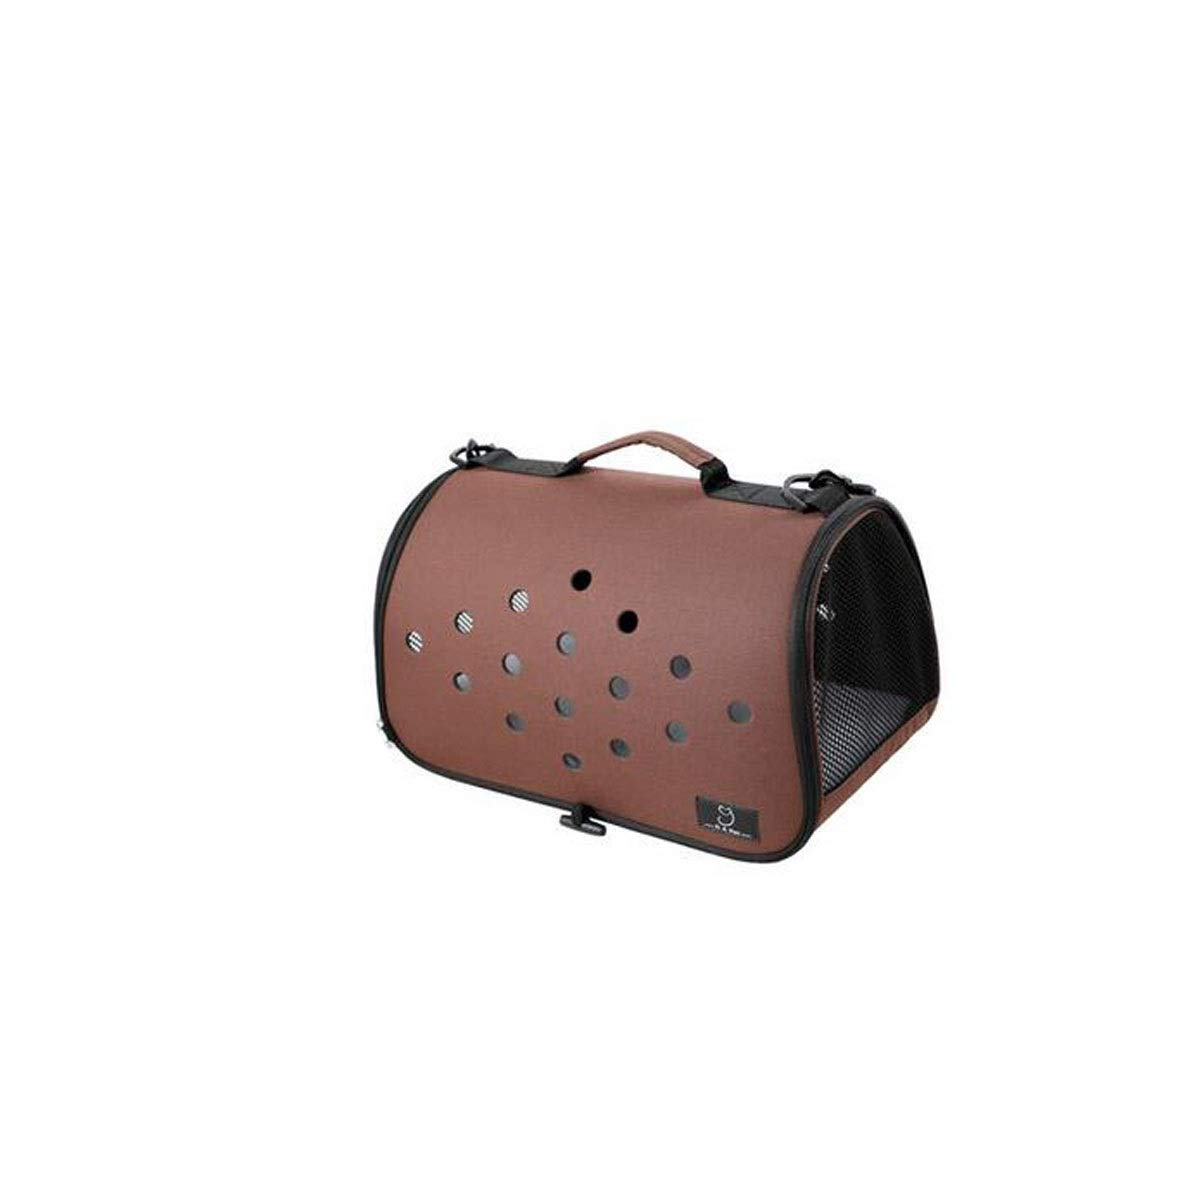 Brown PVA Portable Pet Bag for Outdoor Travel, Leisure, Pet Bag Teddy Outing Package (color   Brown)